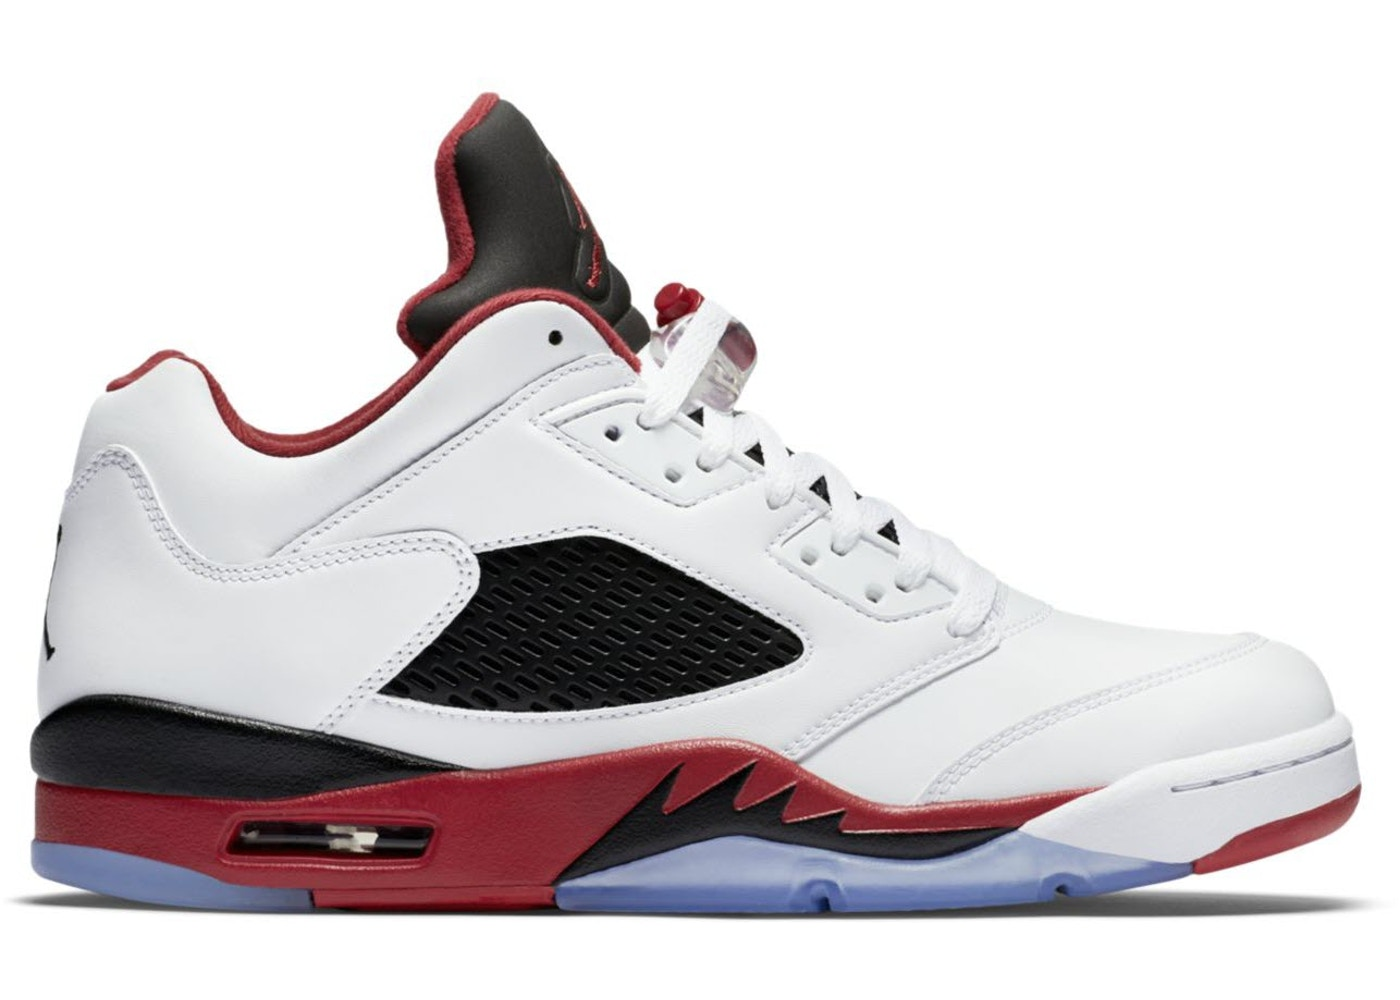 ccc0a8bb50ec Jordan 5 Retro Low Fire Red - 819171-101